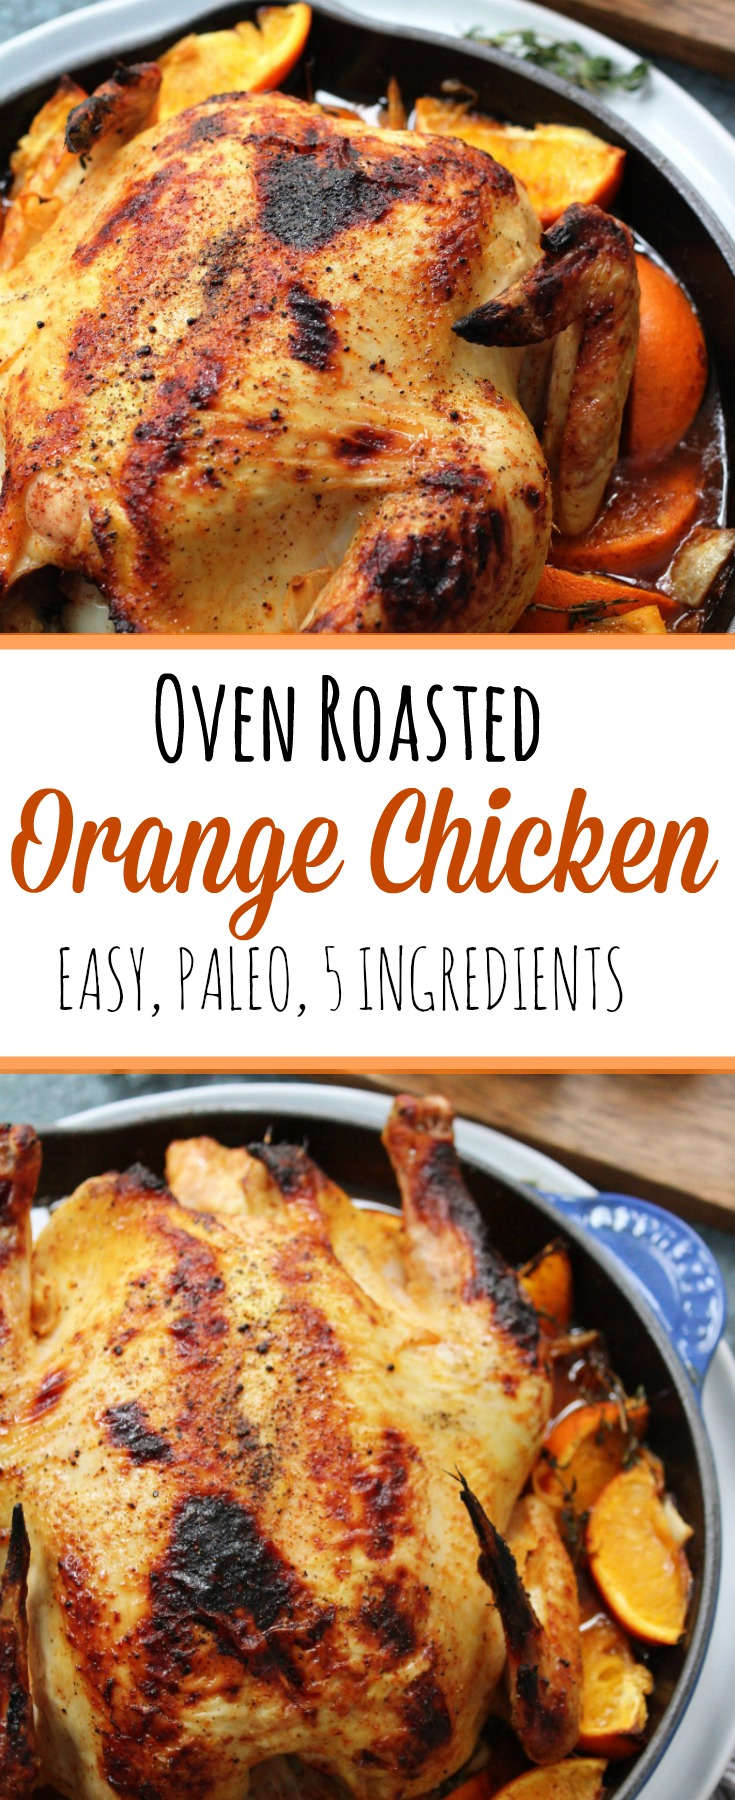 Oven roasted orange chicken is an easy paleo chicken recipe that only takes simple ingredients! It's great for a paleo dinner, meal prep, or changing it up from your usual chicken recipe! #paleorecipes #paleochicken #paleochickenrecipes